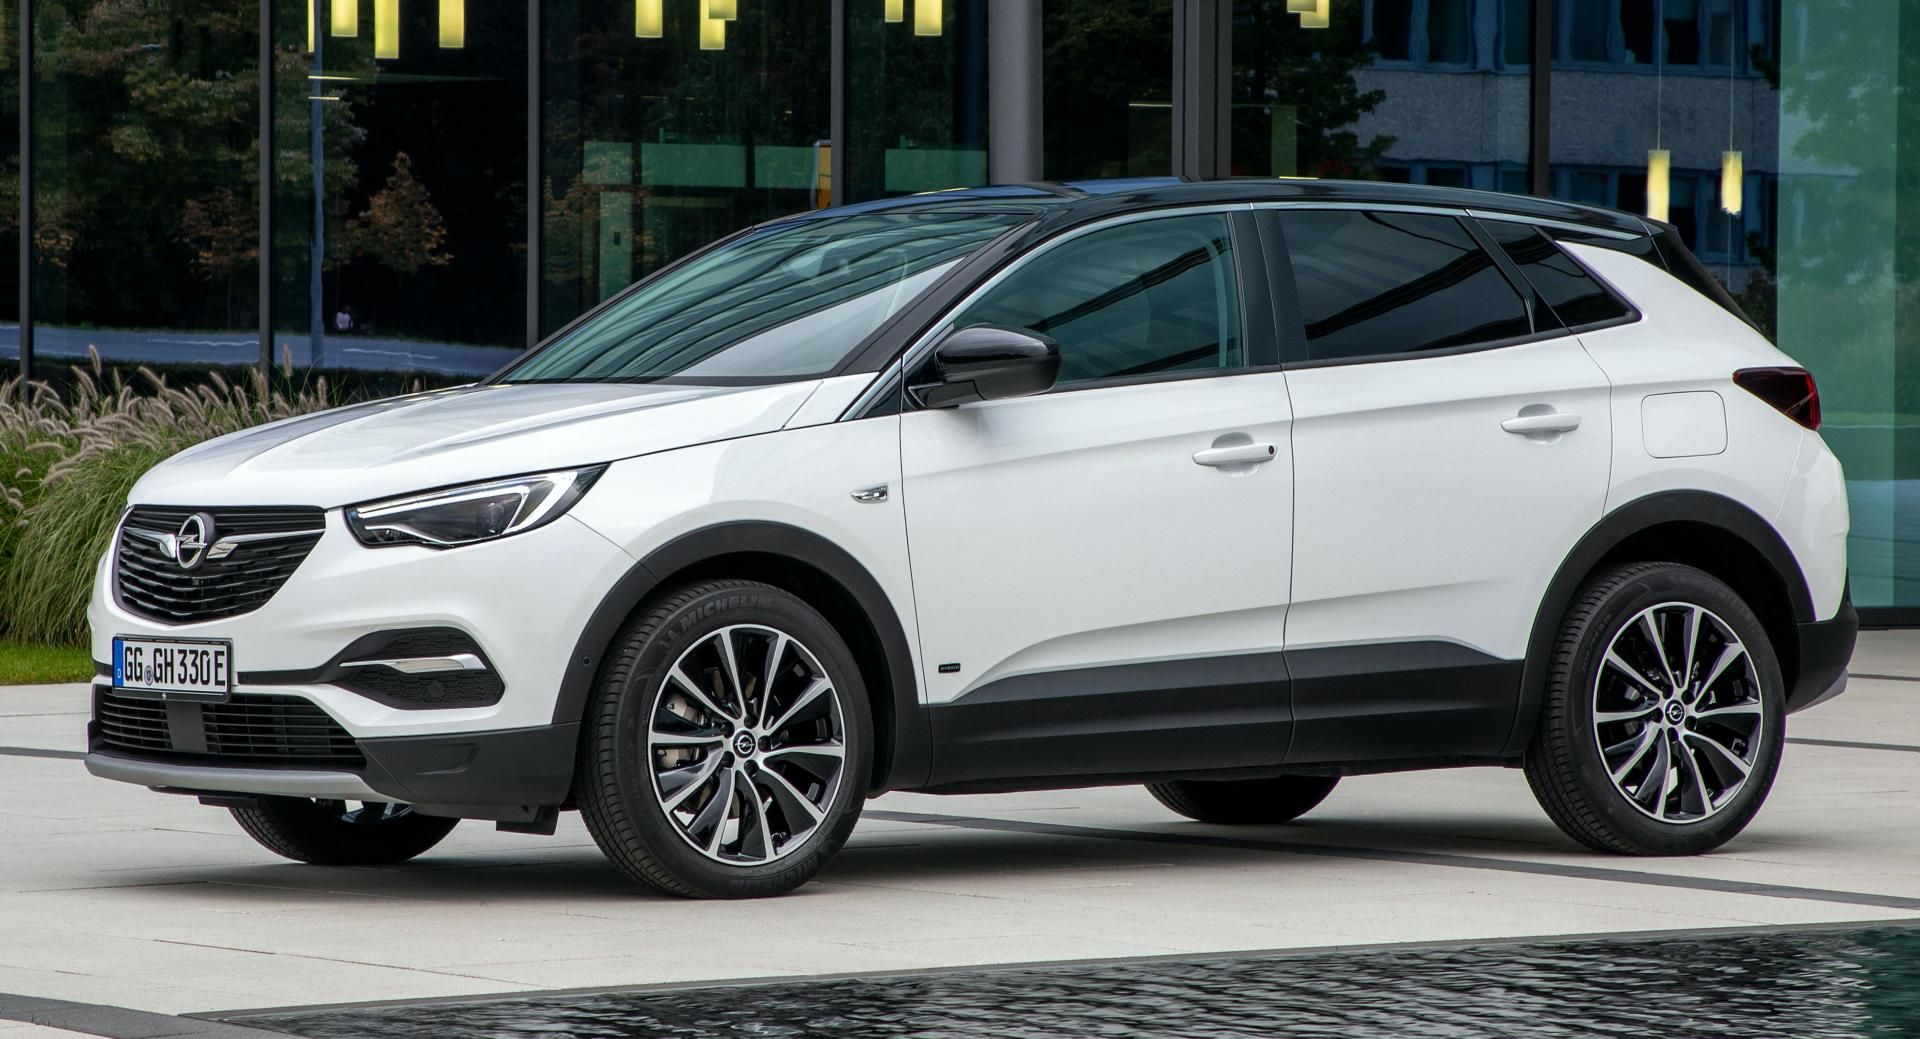 Opel And Vauxhall Launch Fwd Grandland X Plug In Hybrid With 221 Hp Vauxhall Opel Fwd